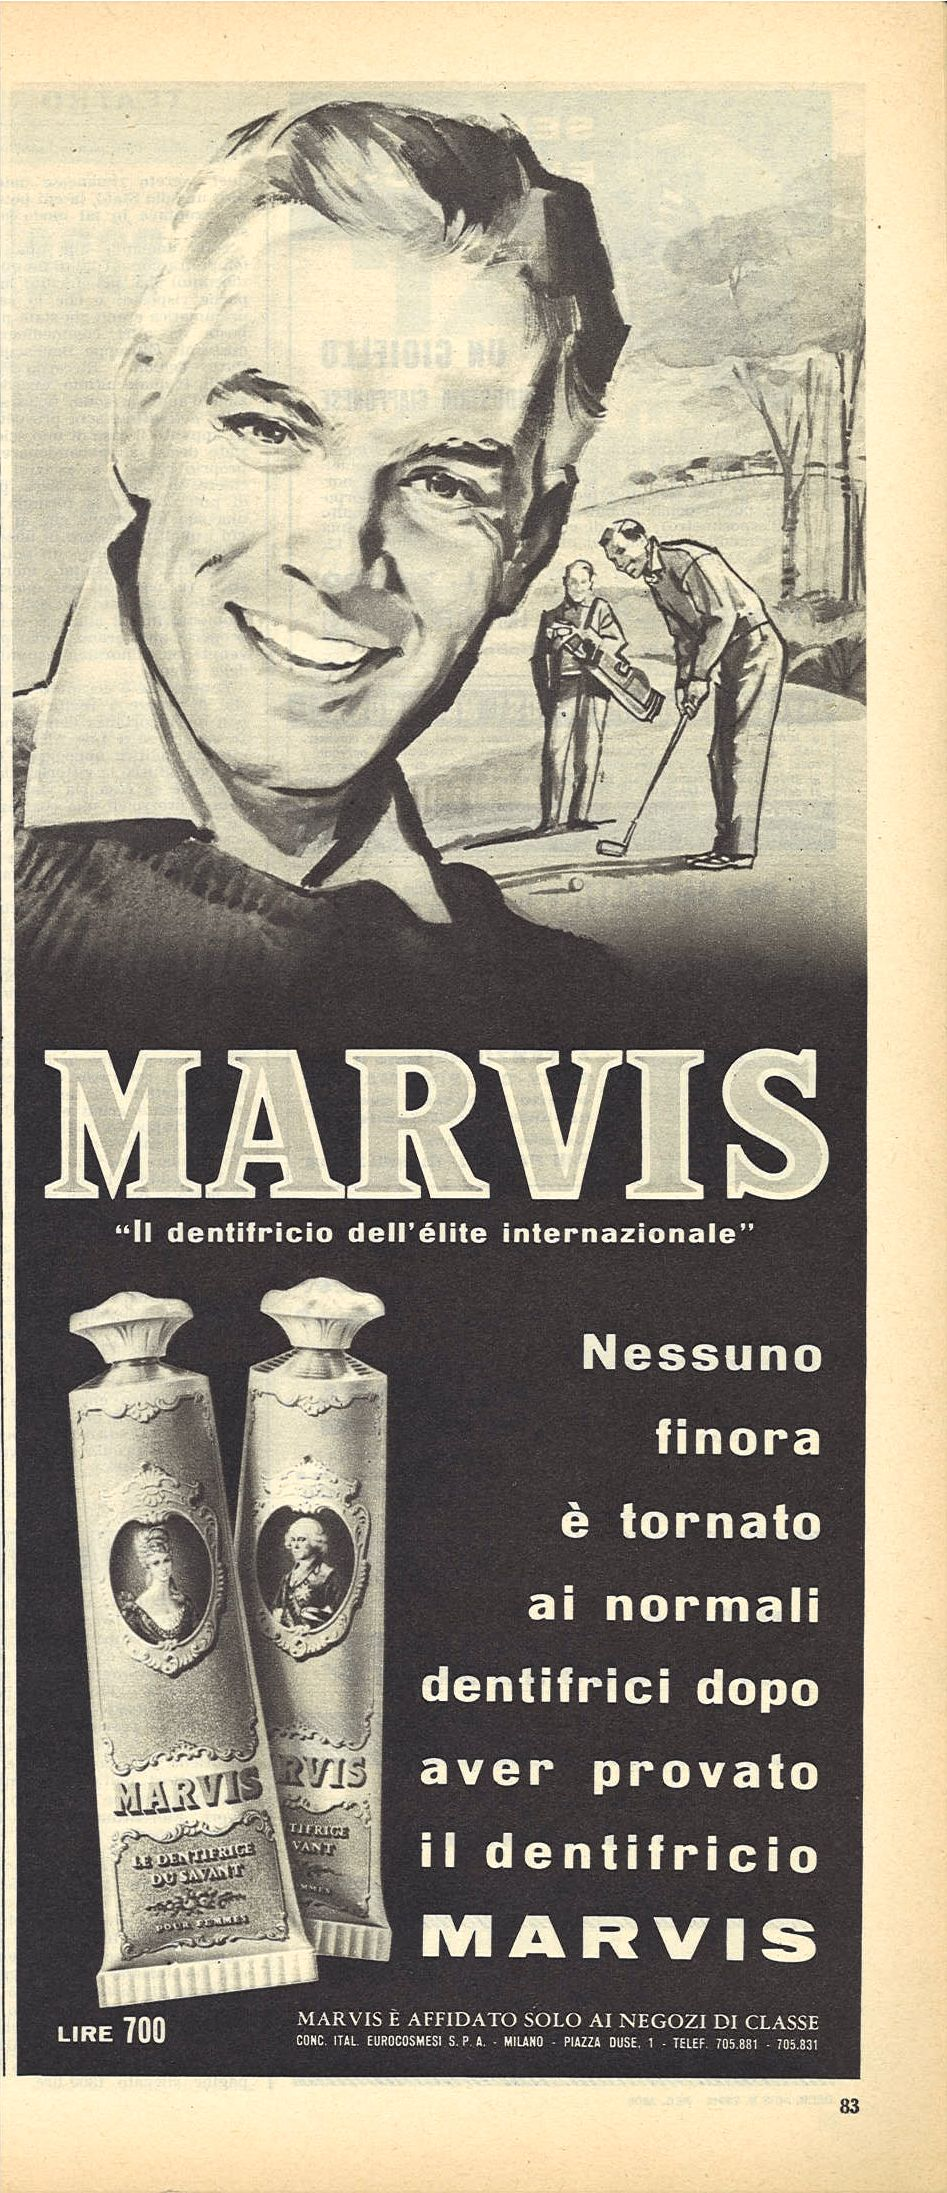 MARVIS IL DENTRIFICIO DELL'ELITE INTERNAZIONALE - ADVERTISING